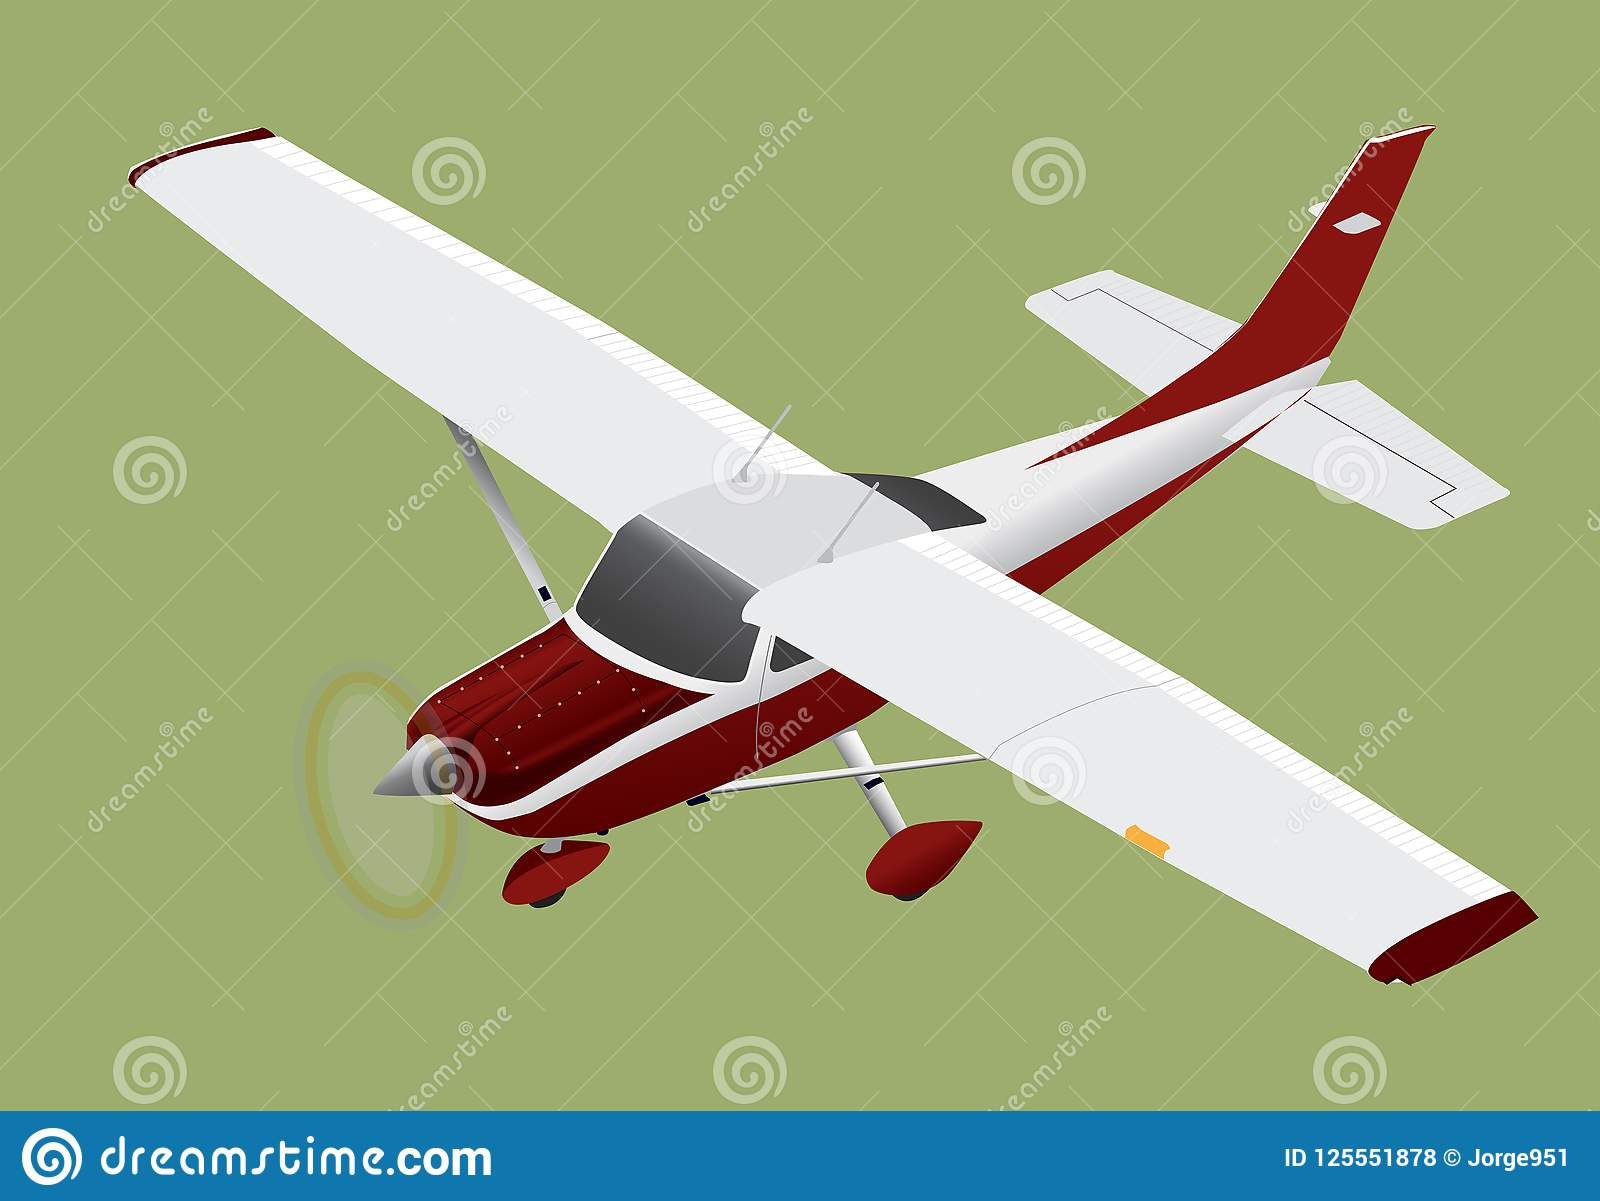 Cessna Plane Small Plane Cessna 182 Flying Illustration 125551878 Megapixl